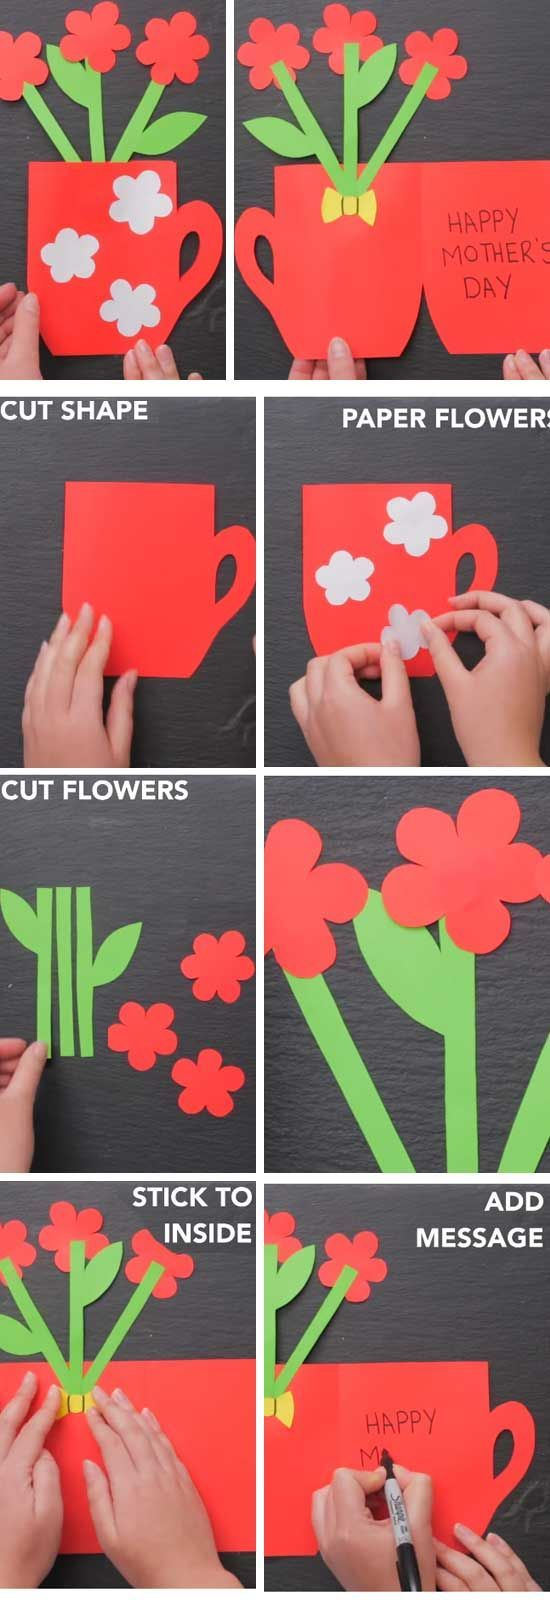 diy mothers day craft ideas for kids to make motherus day gift